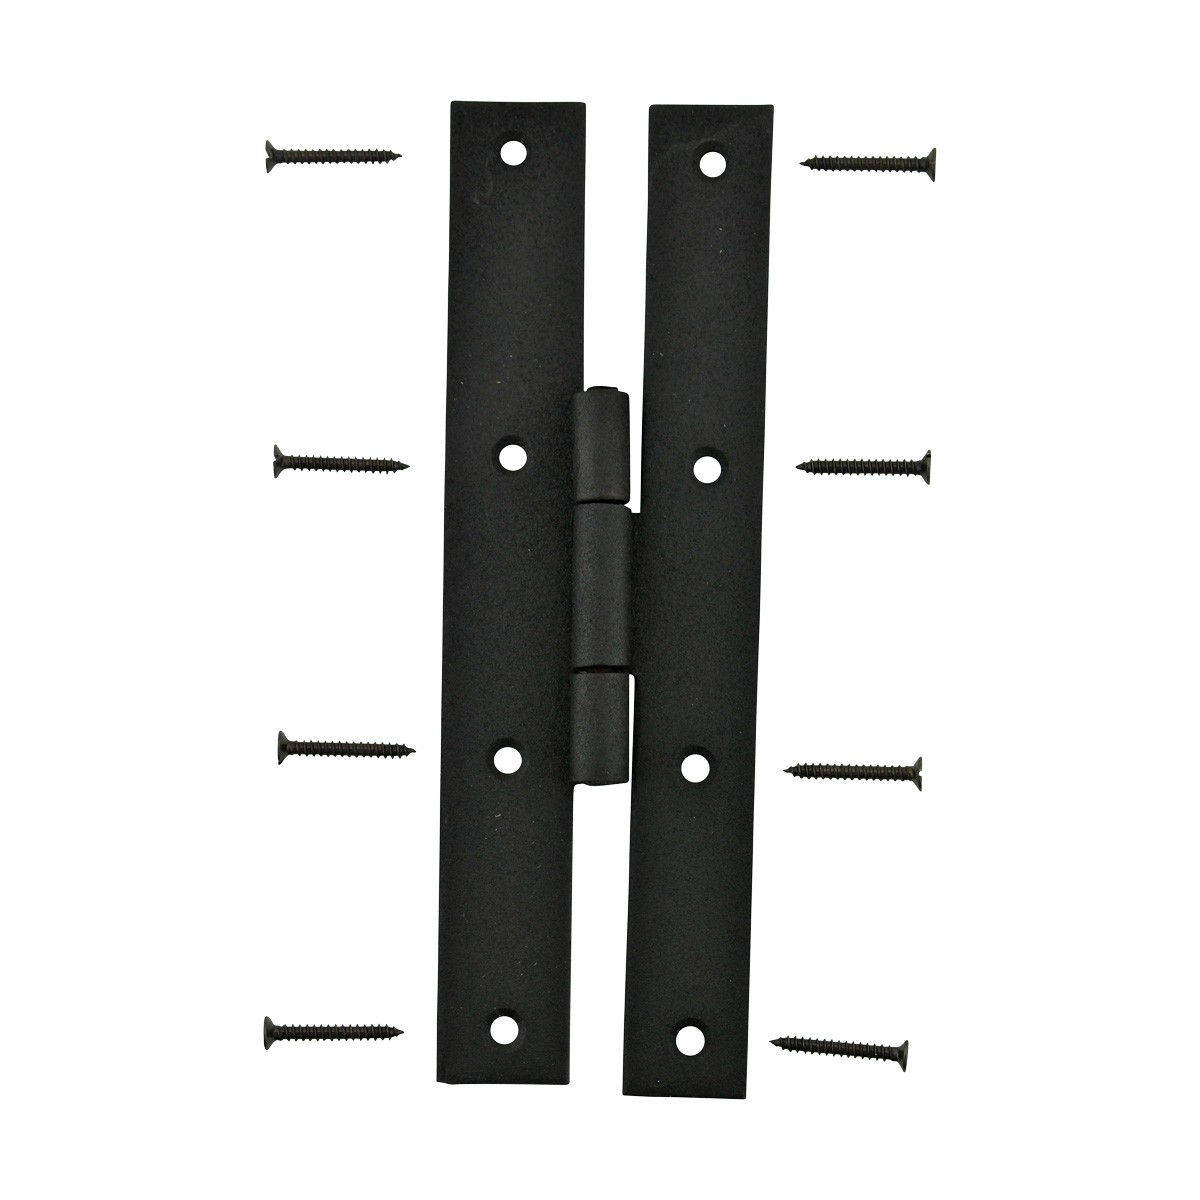 2 Forged Iron Door Flush Hinge H Style 7 H Door Gate Pantry Cabinet Wrought Iron H Hinge Flush Mount Flat Wrought Iron H Door Hinge Wrought Cast Forged Stamped Black Iron Door Hinge